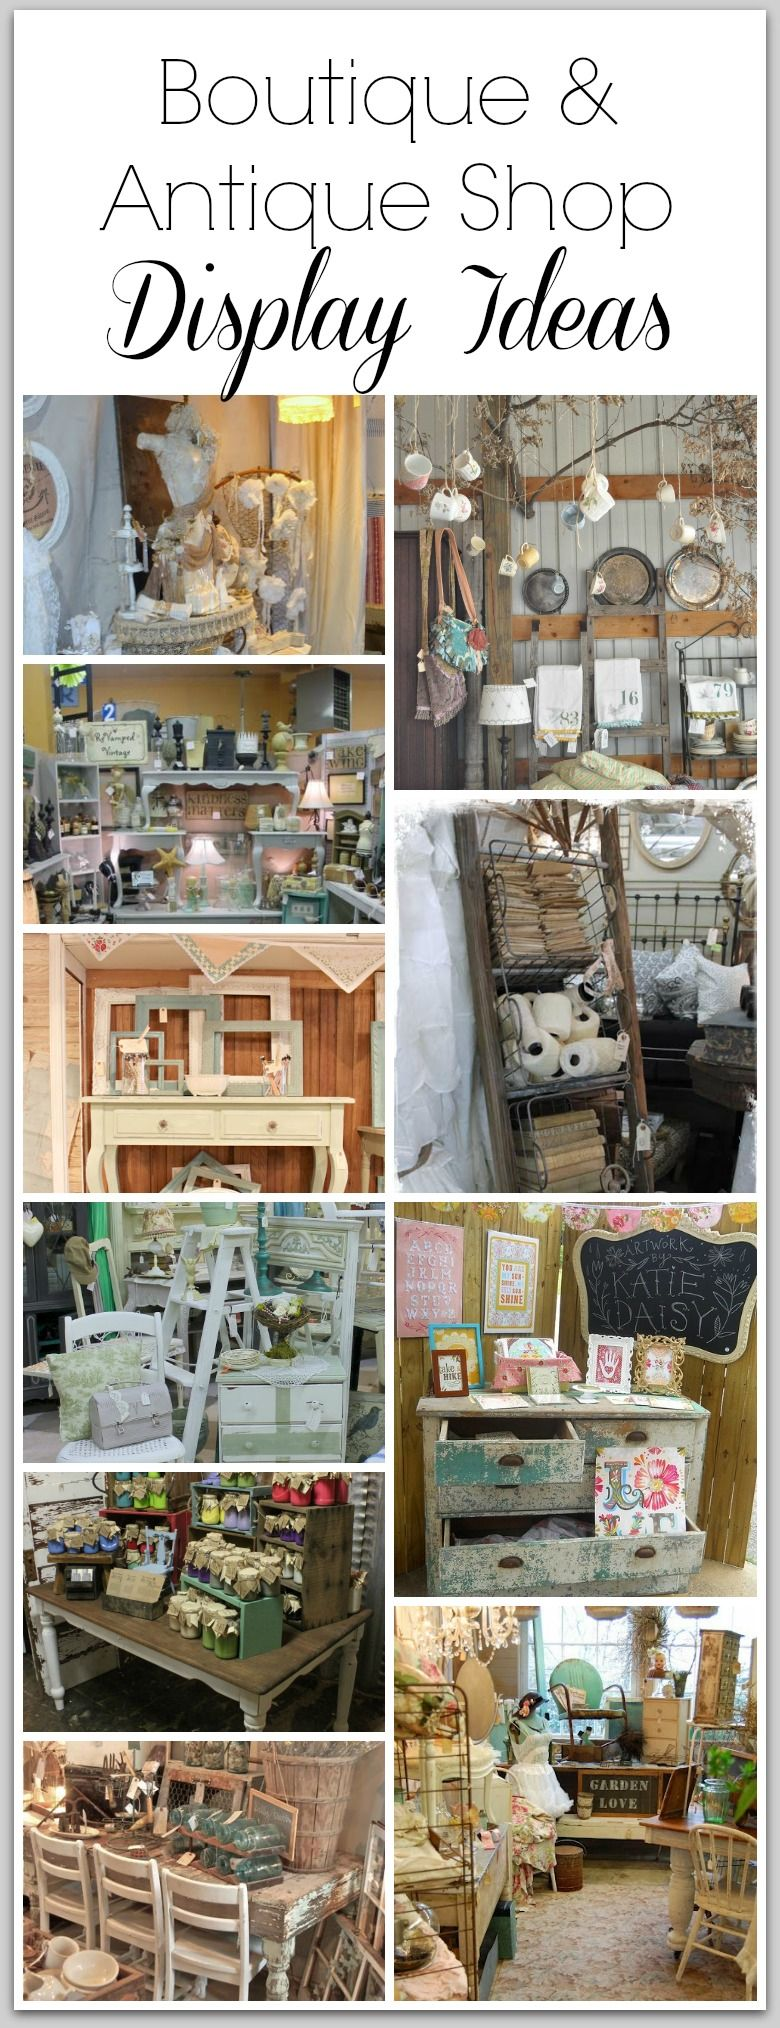 Ladentheke Vintage Boutique Antique Shop Display Ideas Flea Market Booth